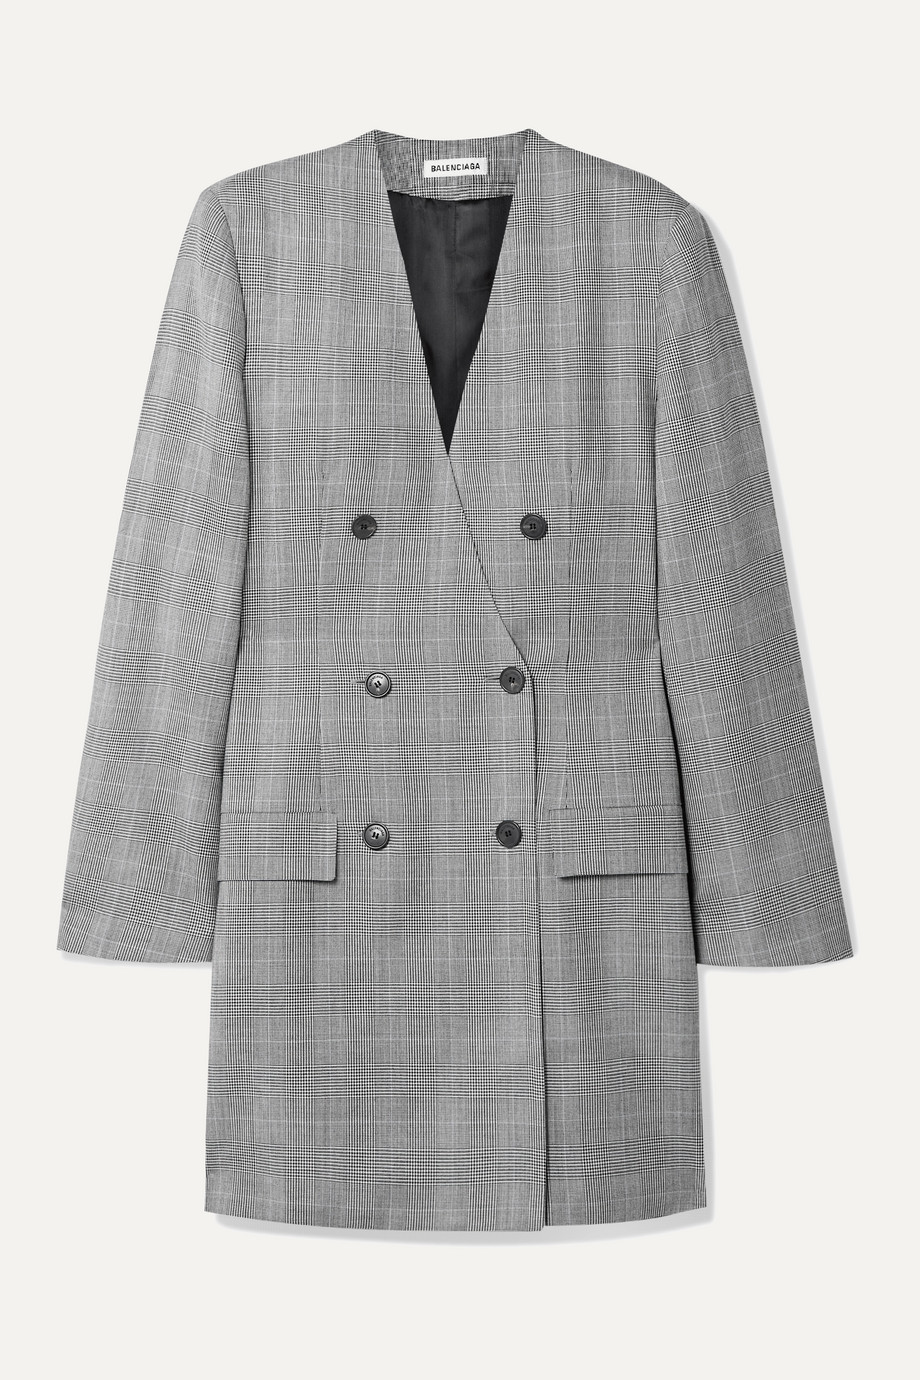 Balenciaga Double-breasted Prince of Wales checked wool  dress